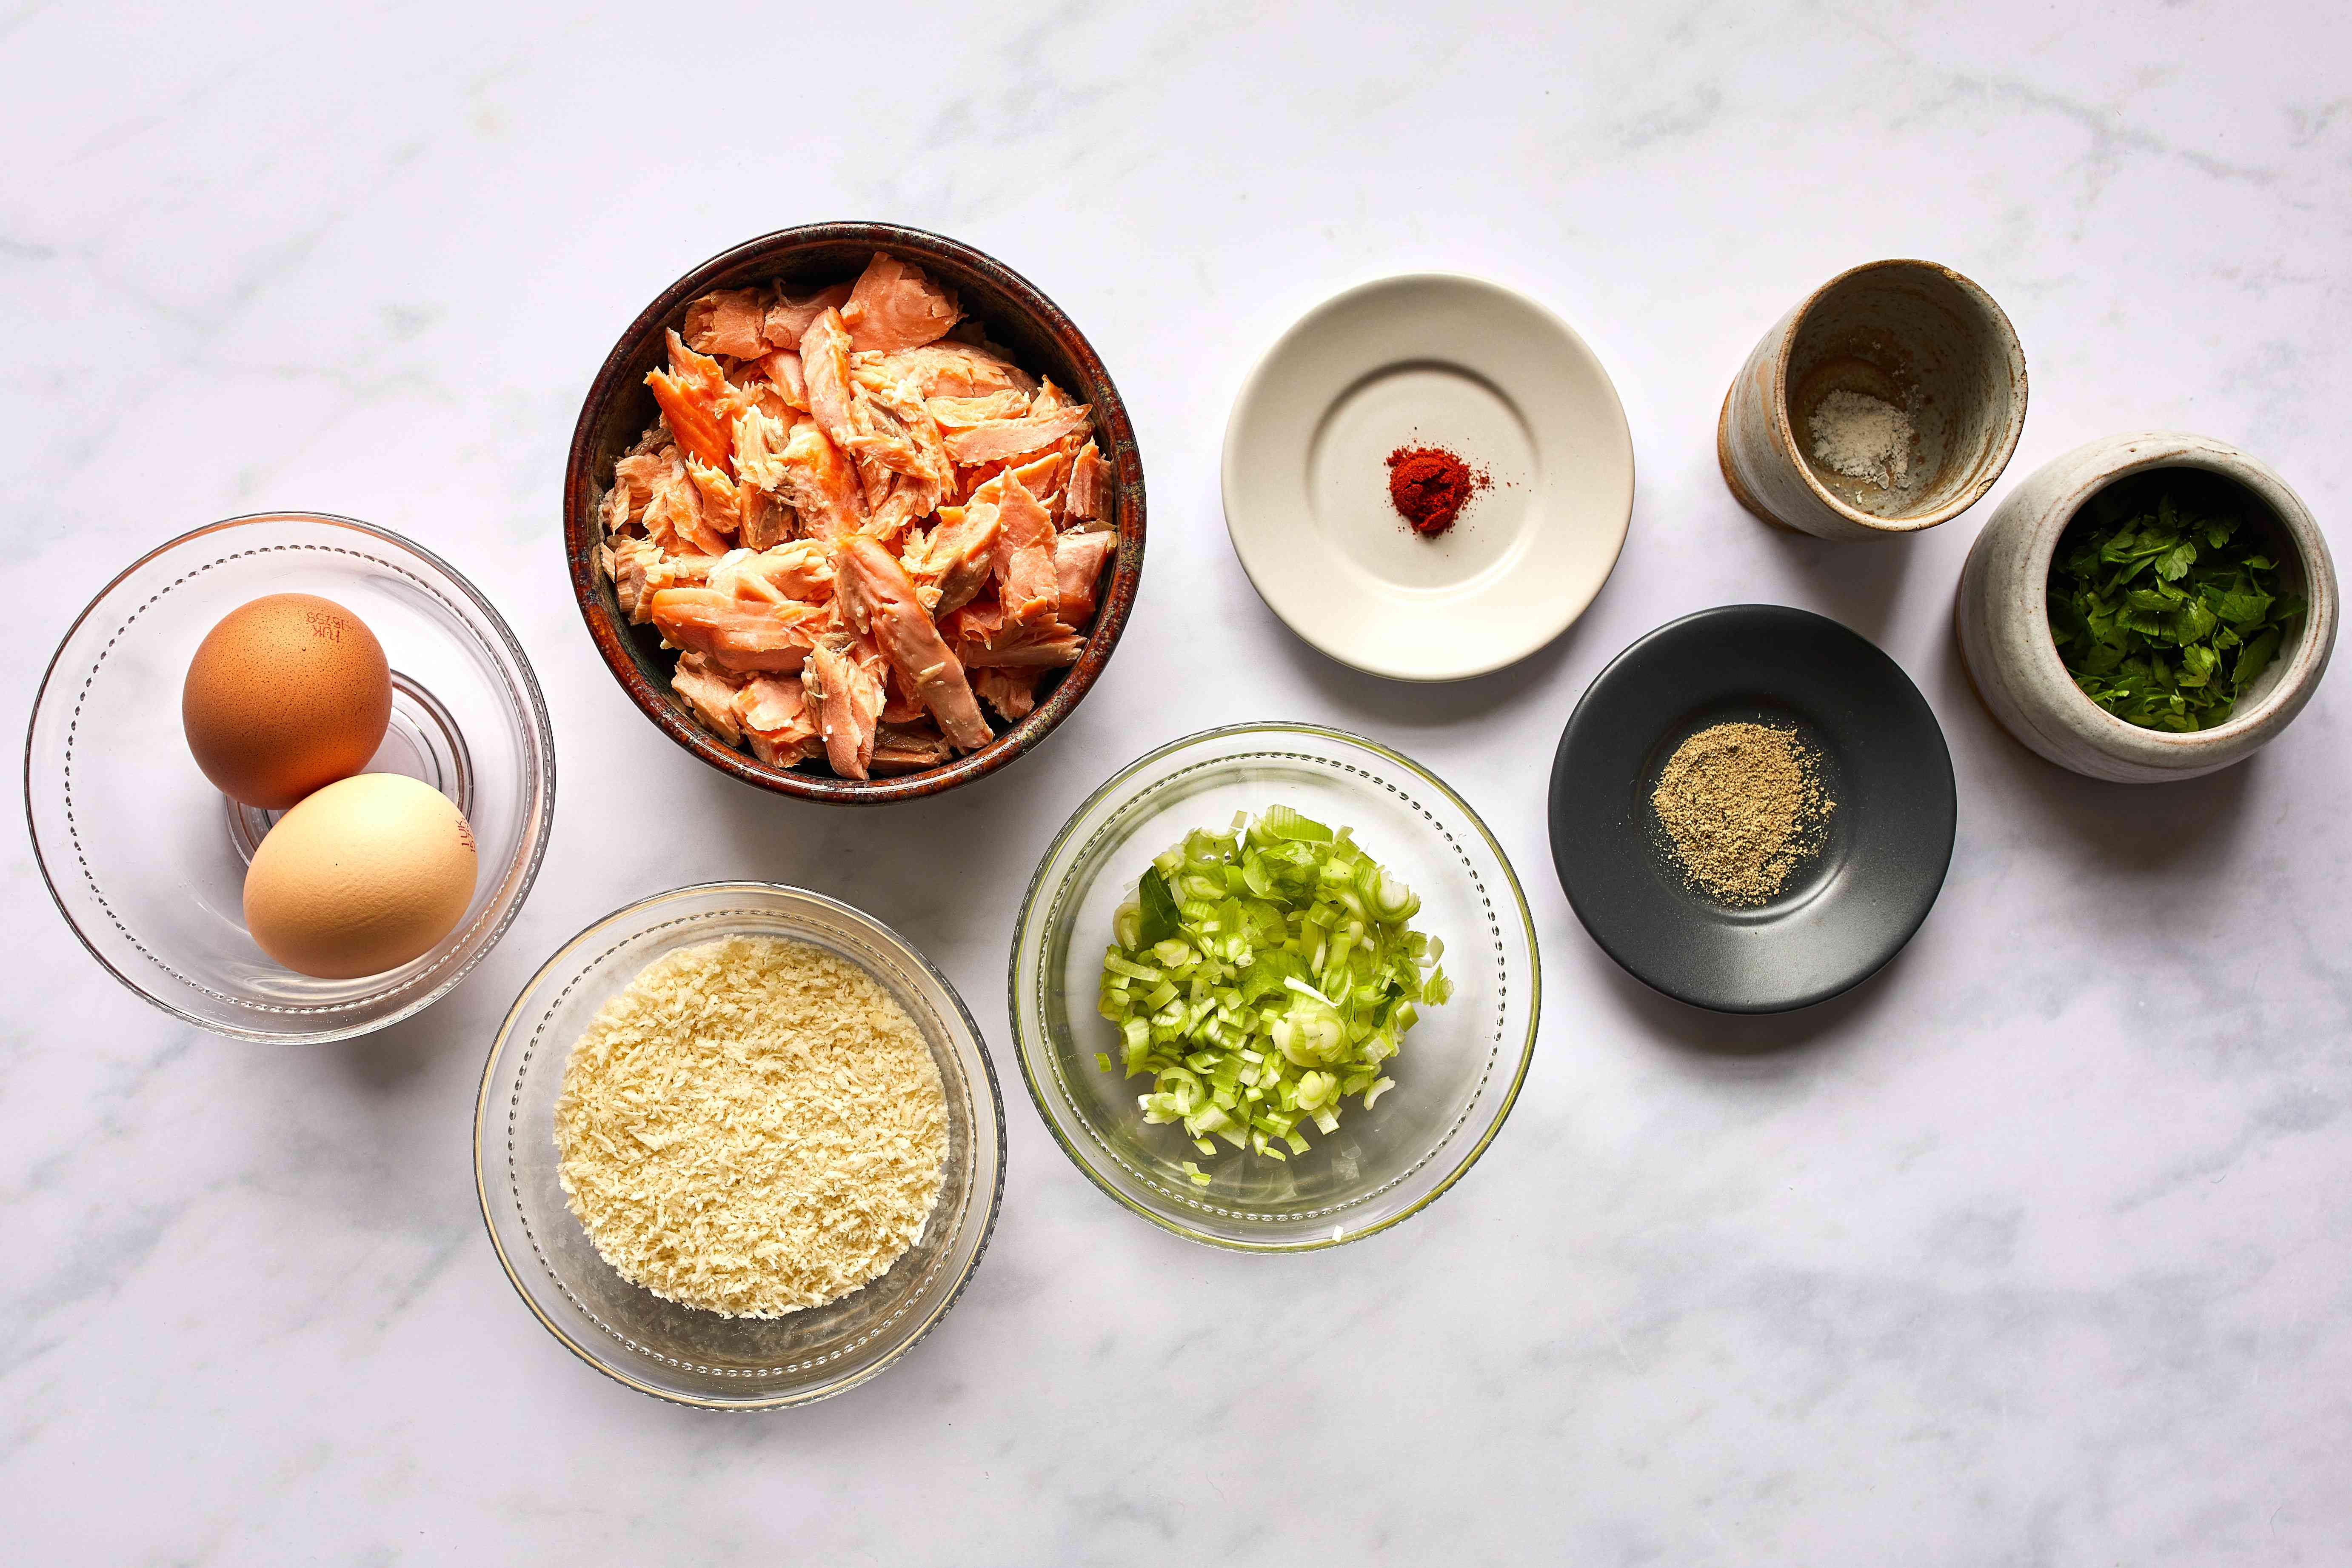 Ingredients for panko-crusted salmon cakes